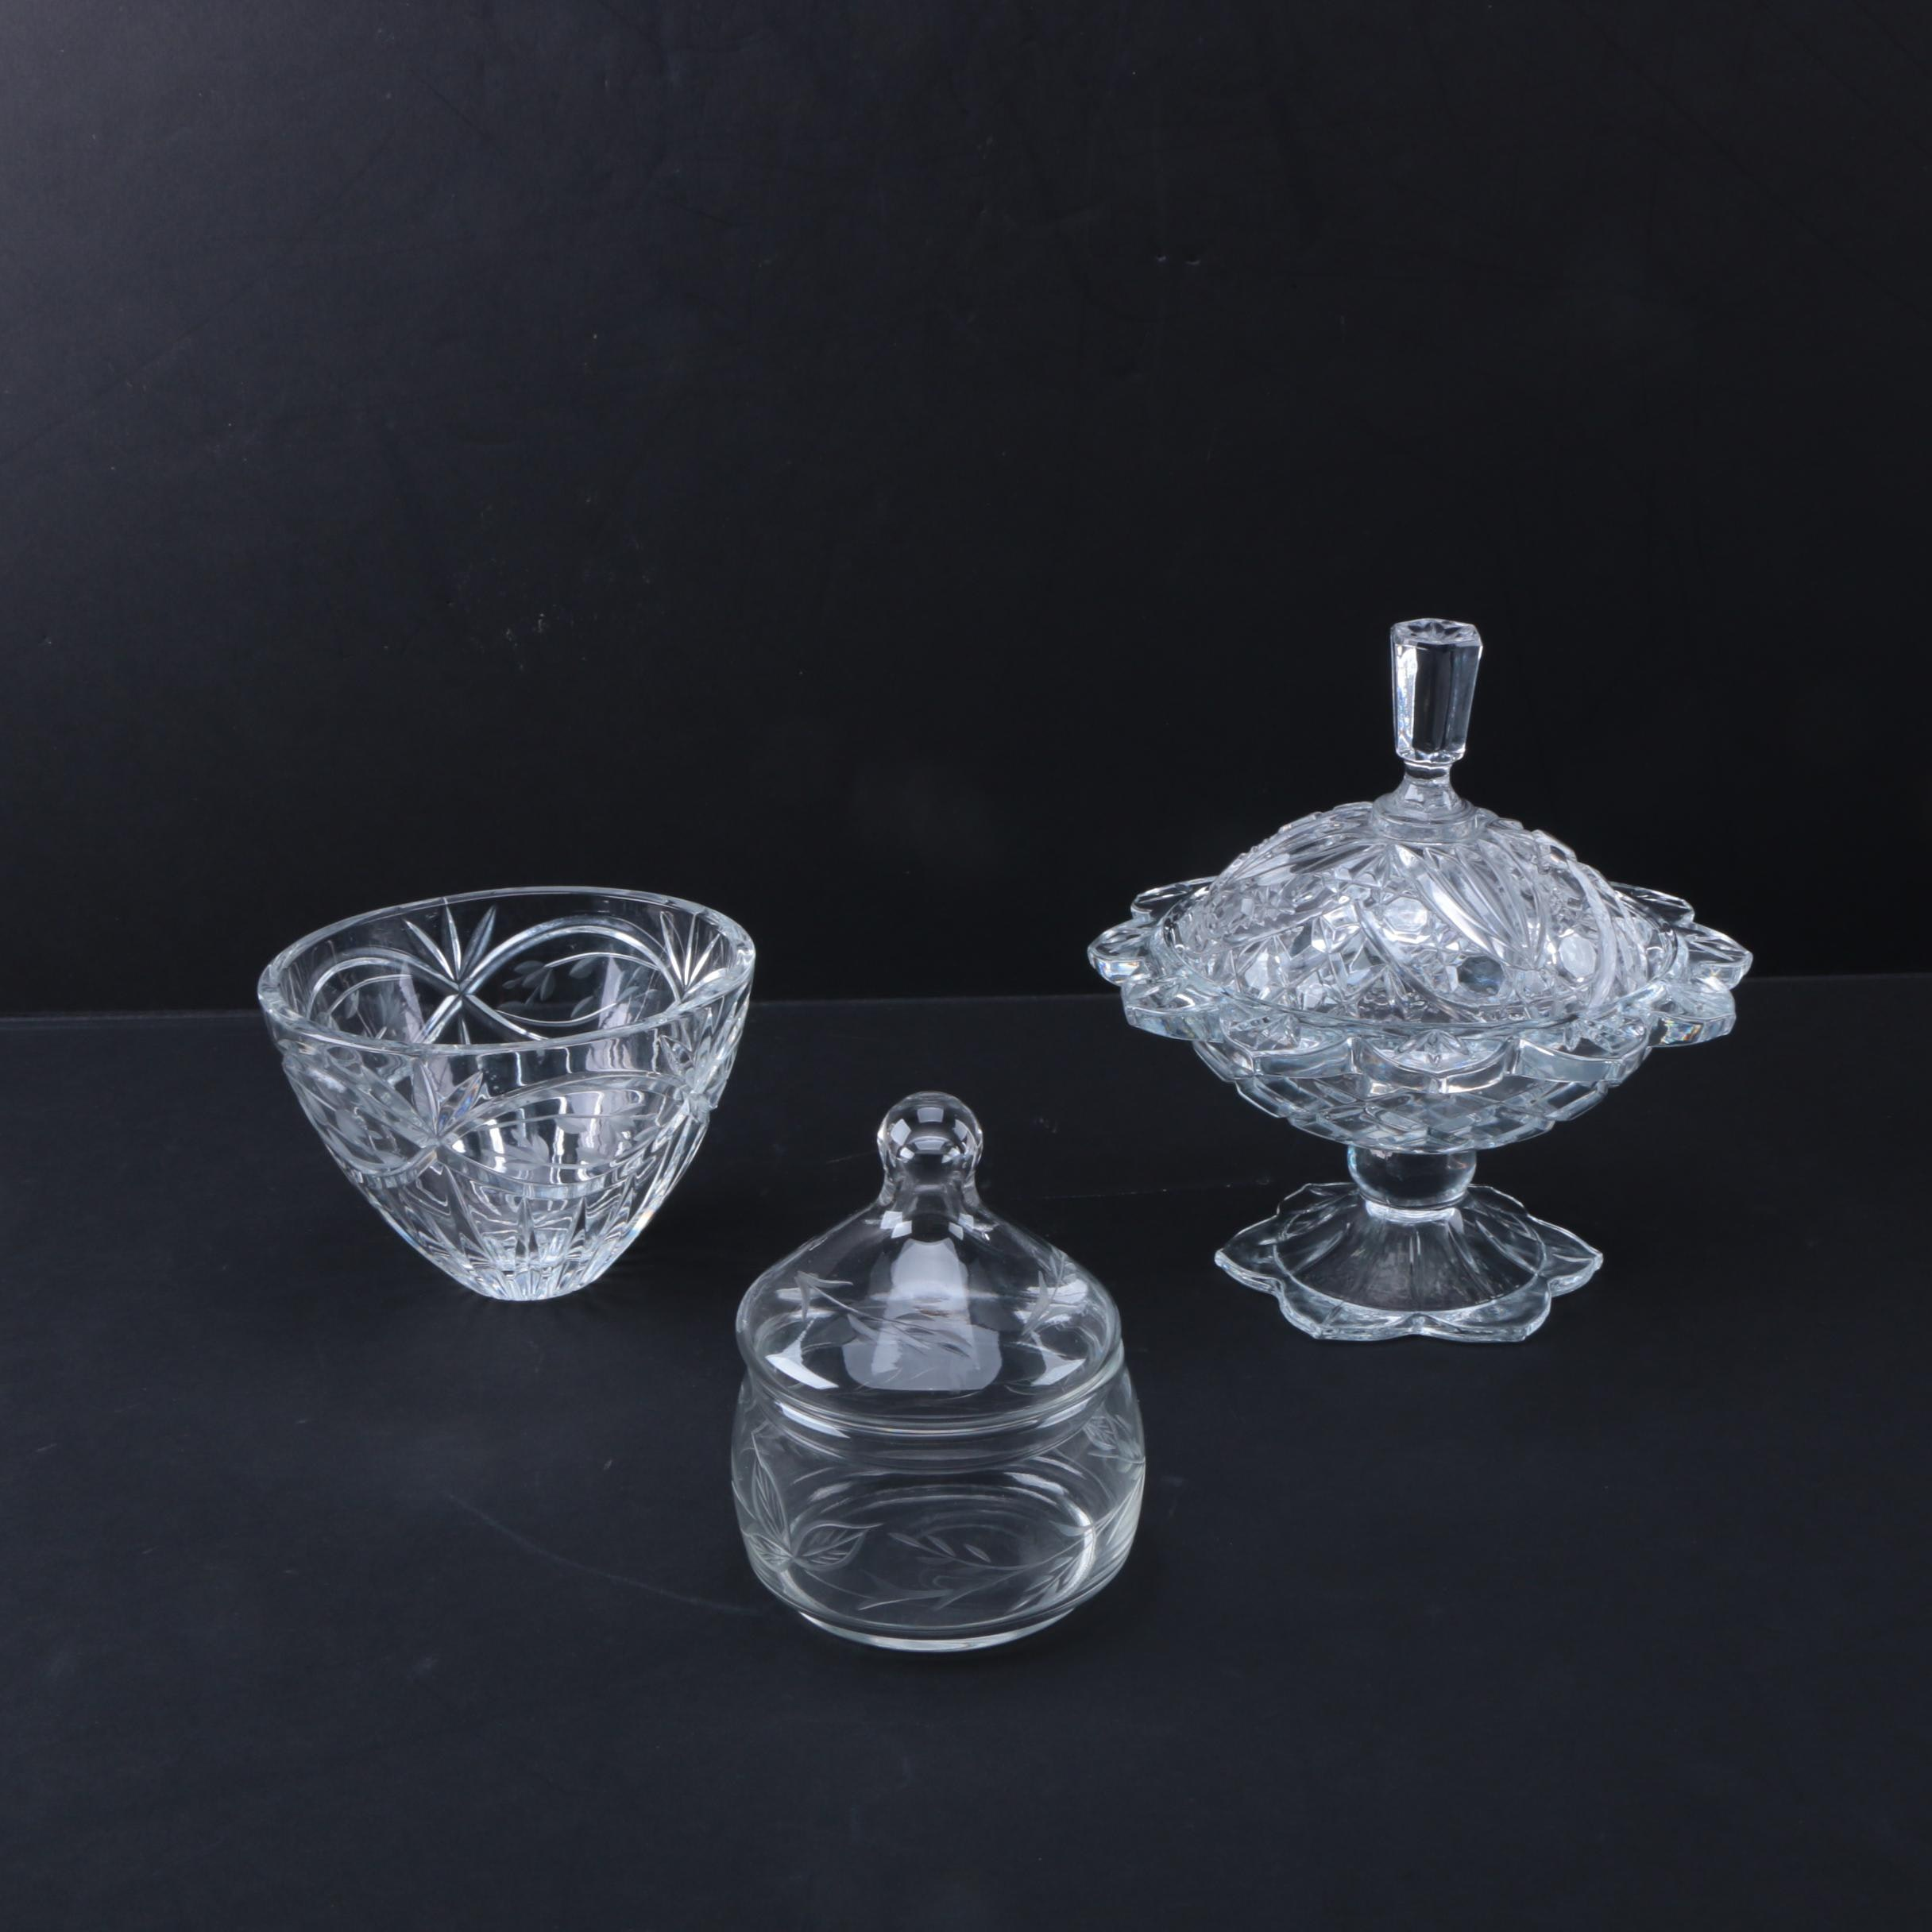 Vintage Lidded Glass Compote, Etched Glass Jar and Crystal Bowl